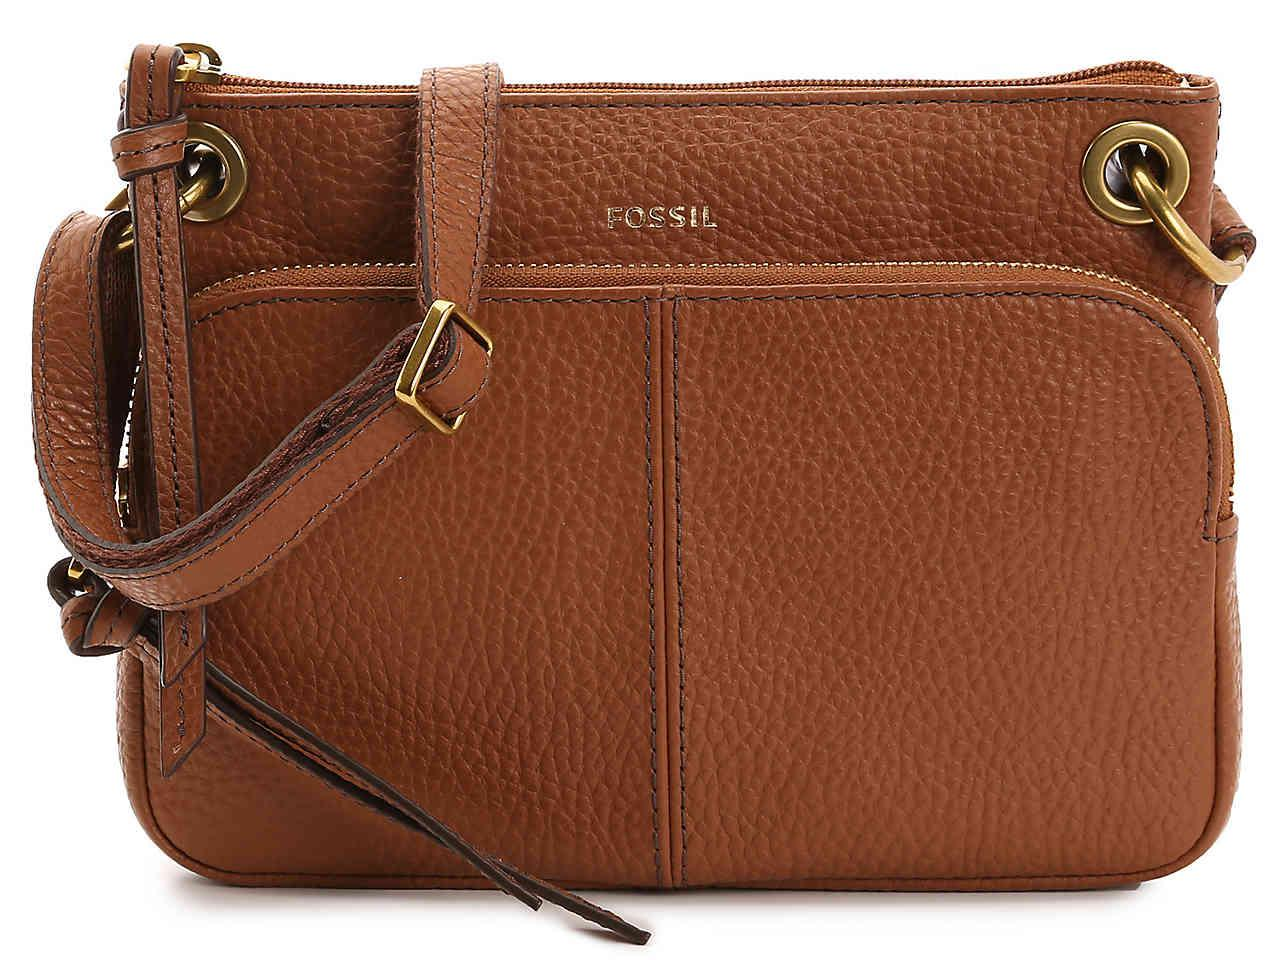 Fossil Karli Leather Crossbody Bag In